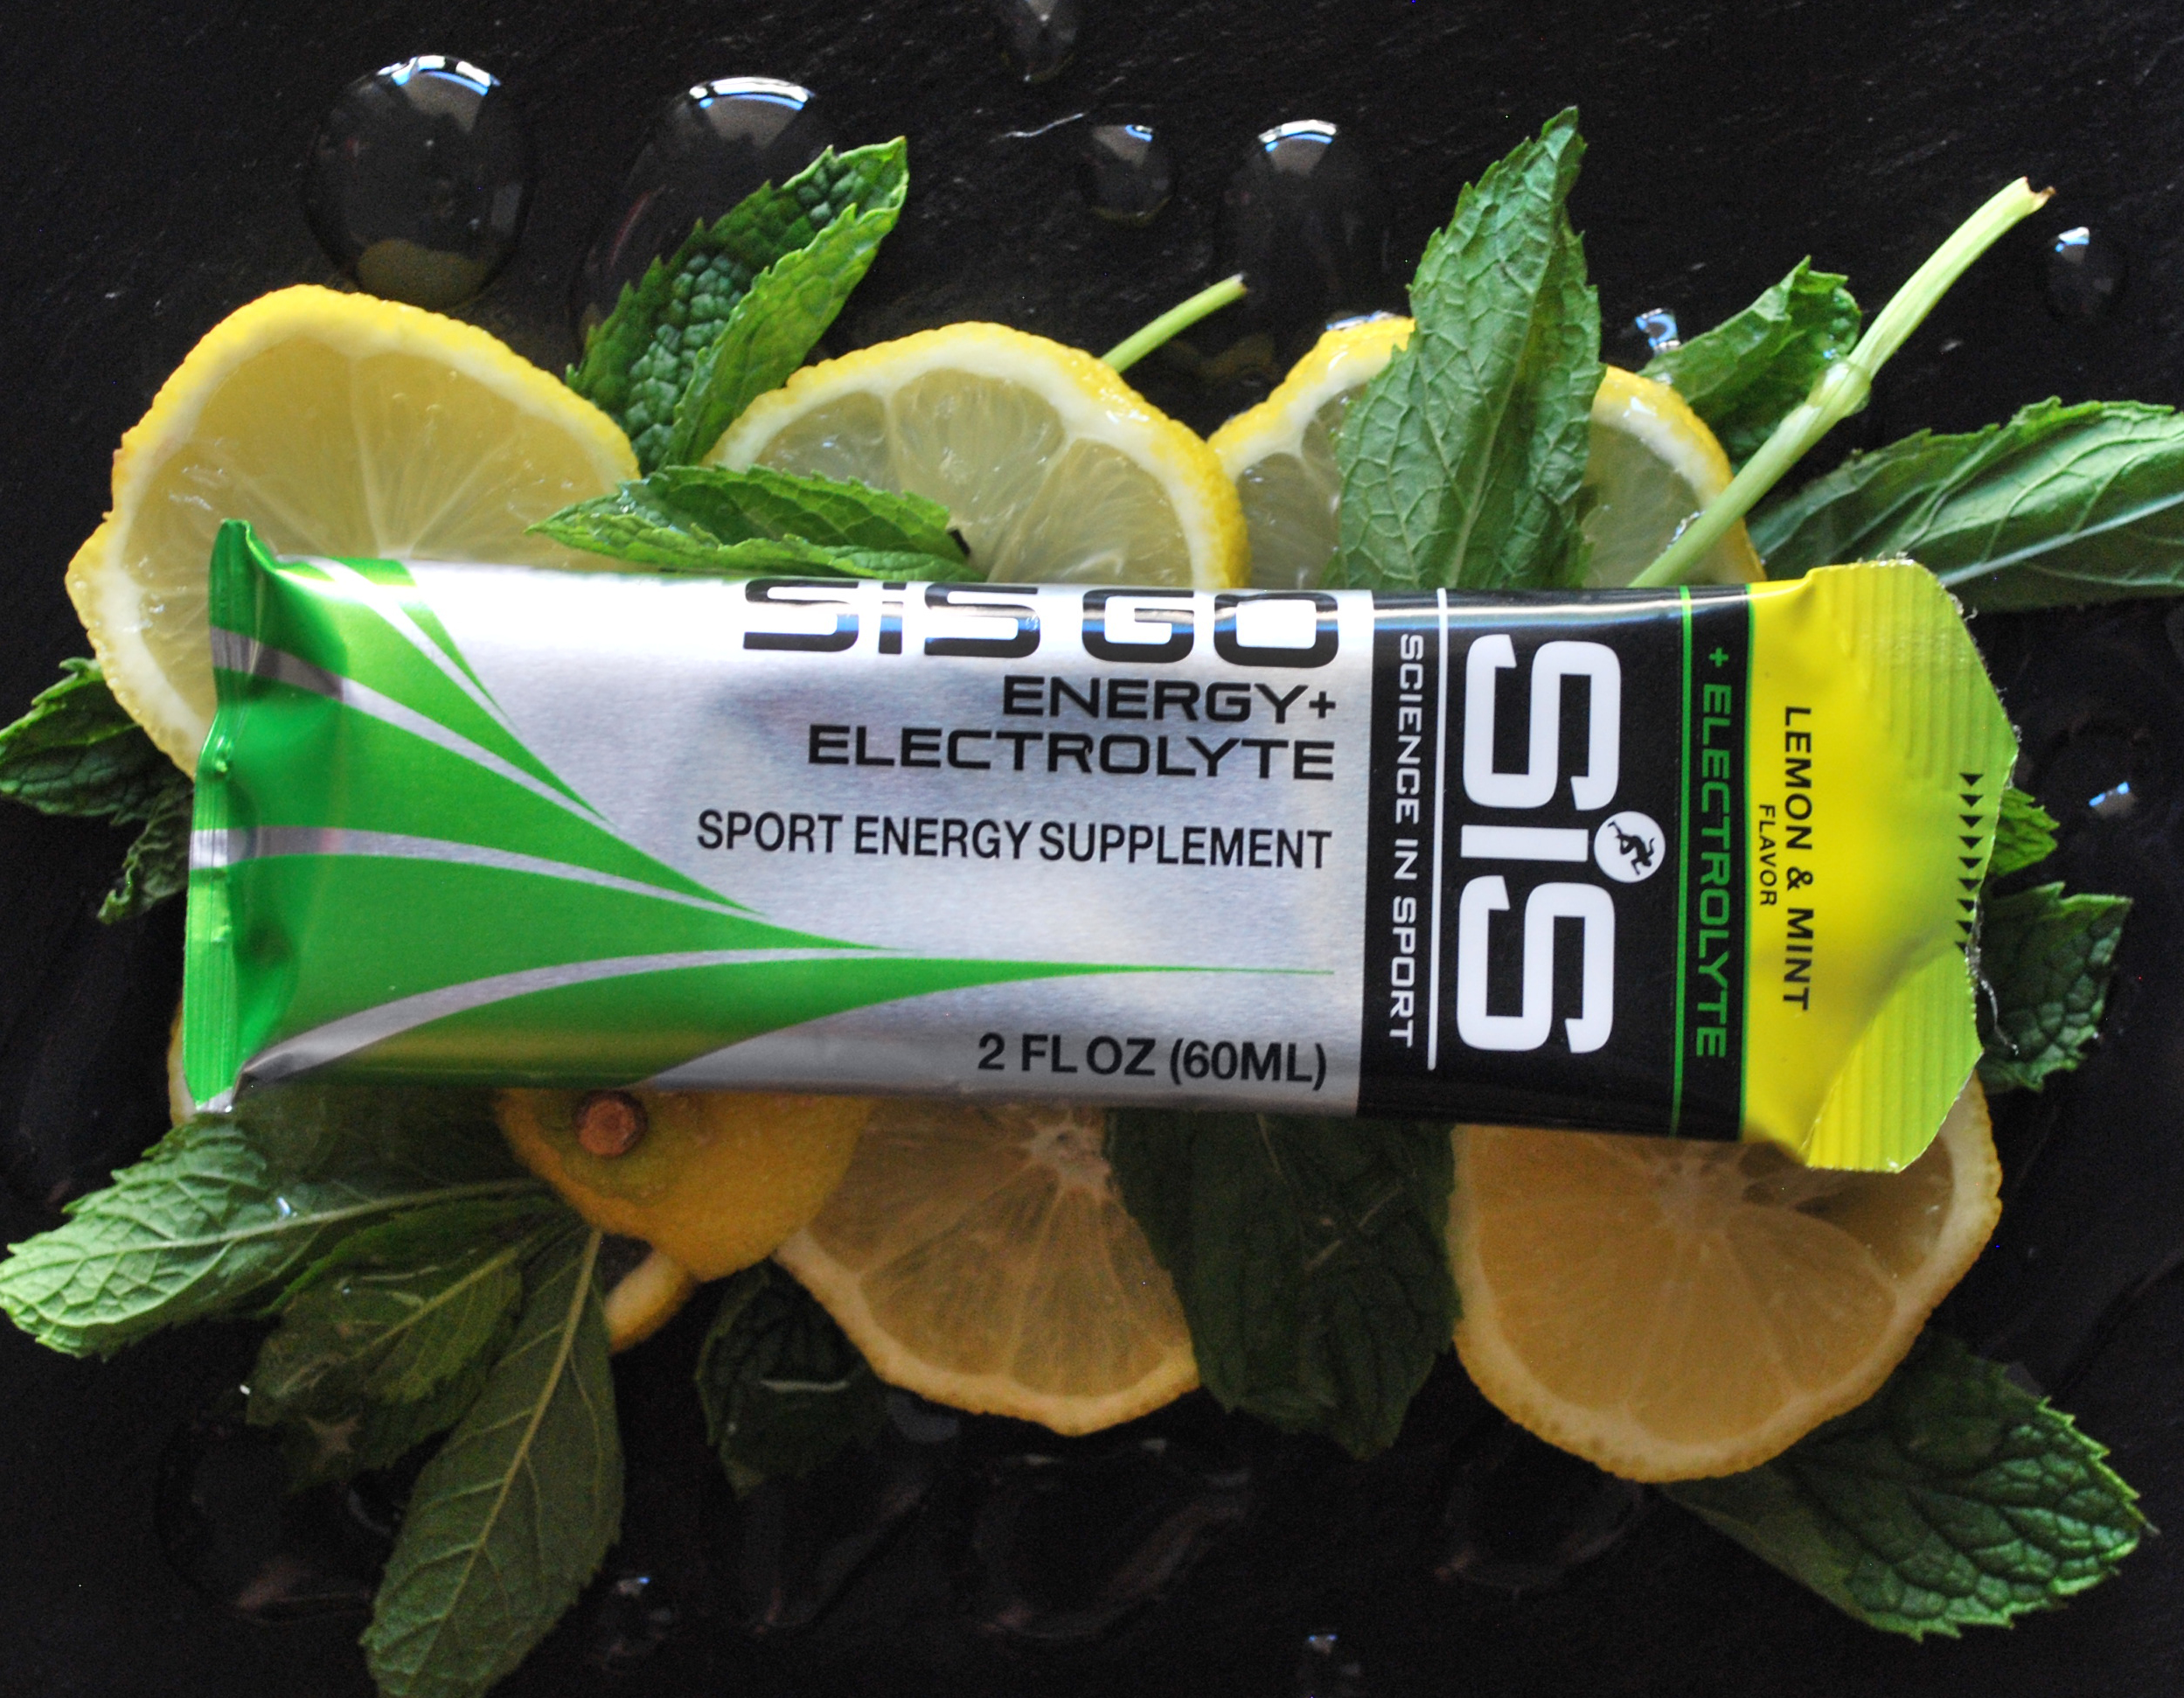 Fun with fuel. Lemon & Mint + Electrolyte by Science in Sport. © Photo and styling by Andrea Heser